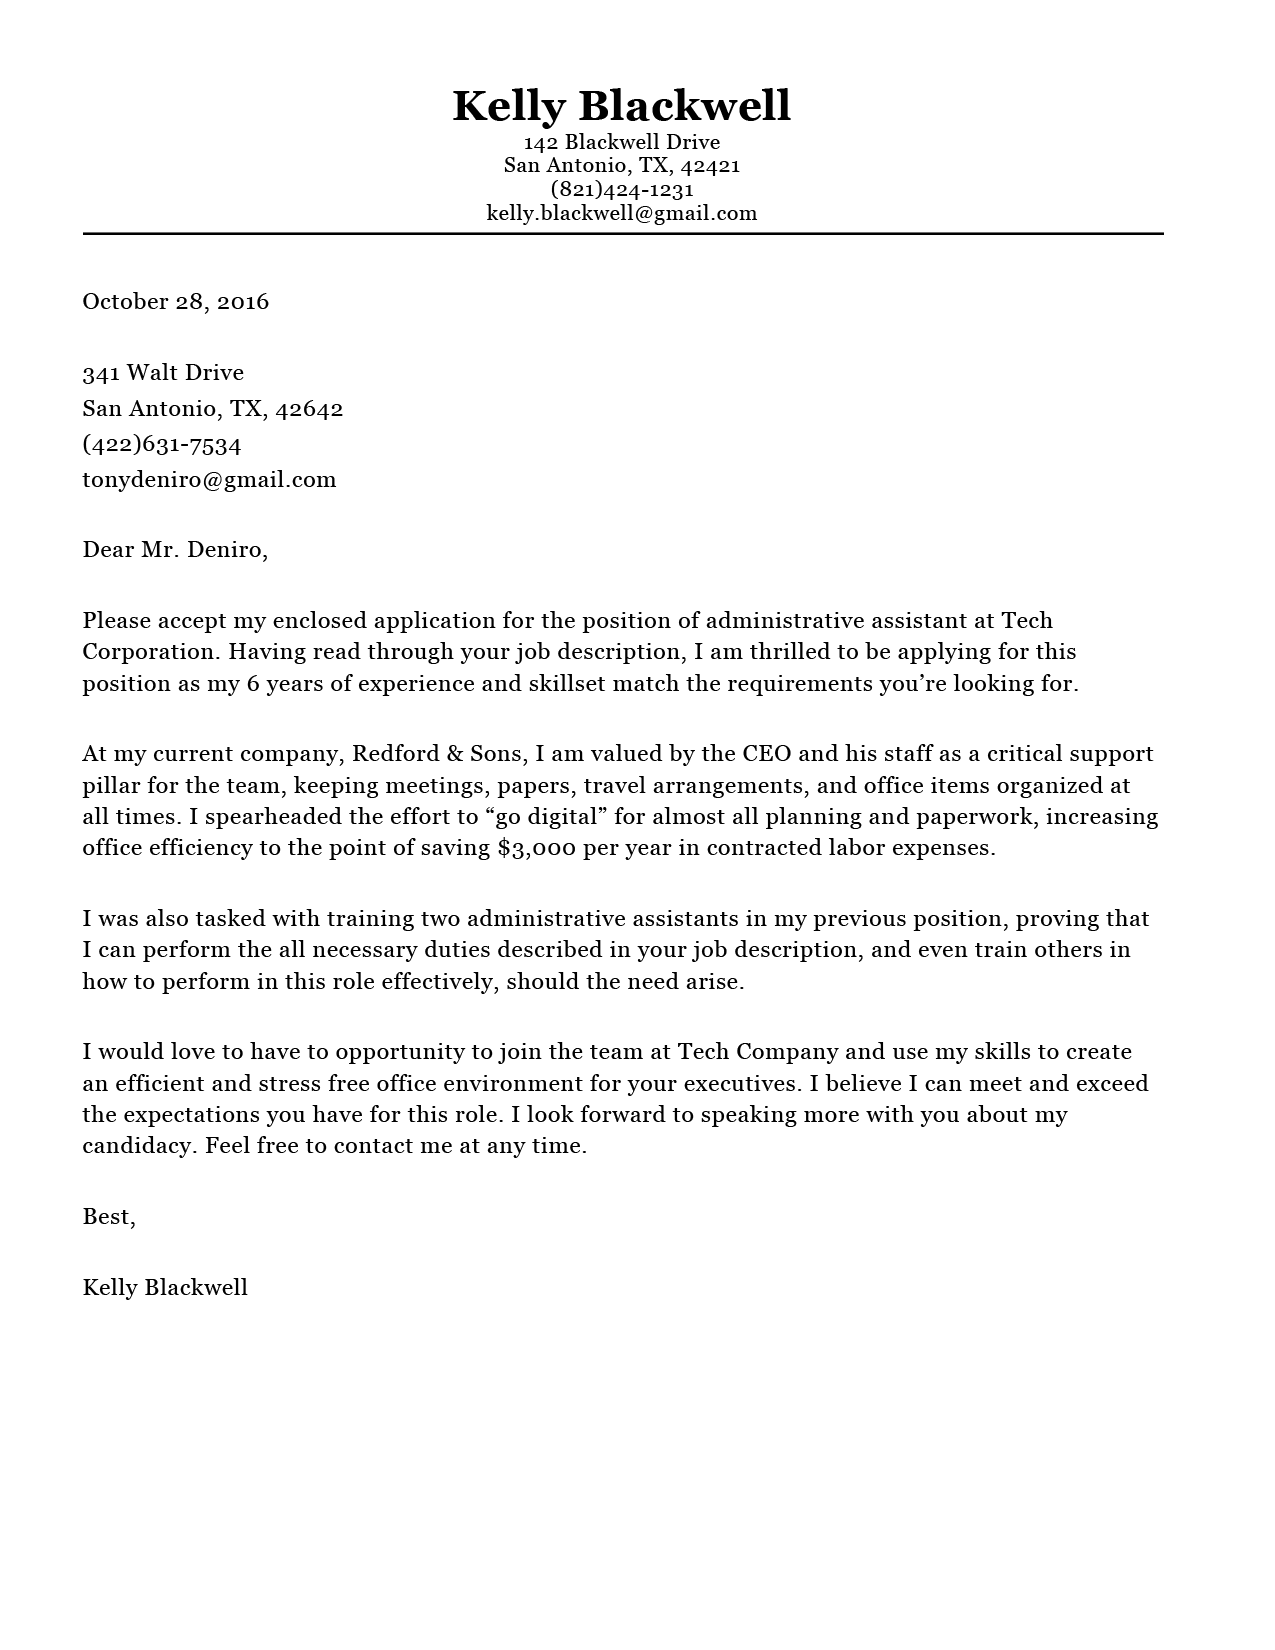 Classic Cover Letter Template  How To Make Cover Letter